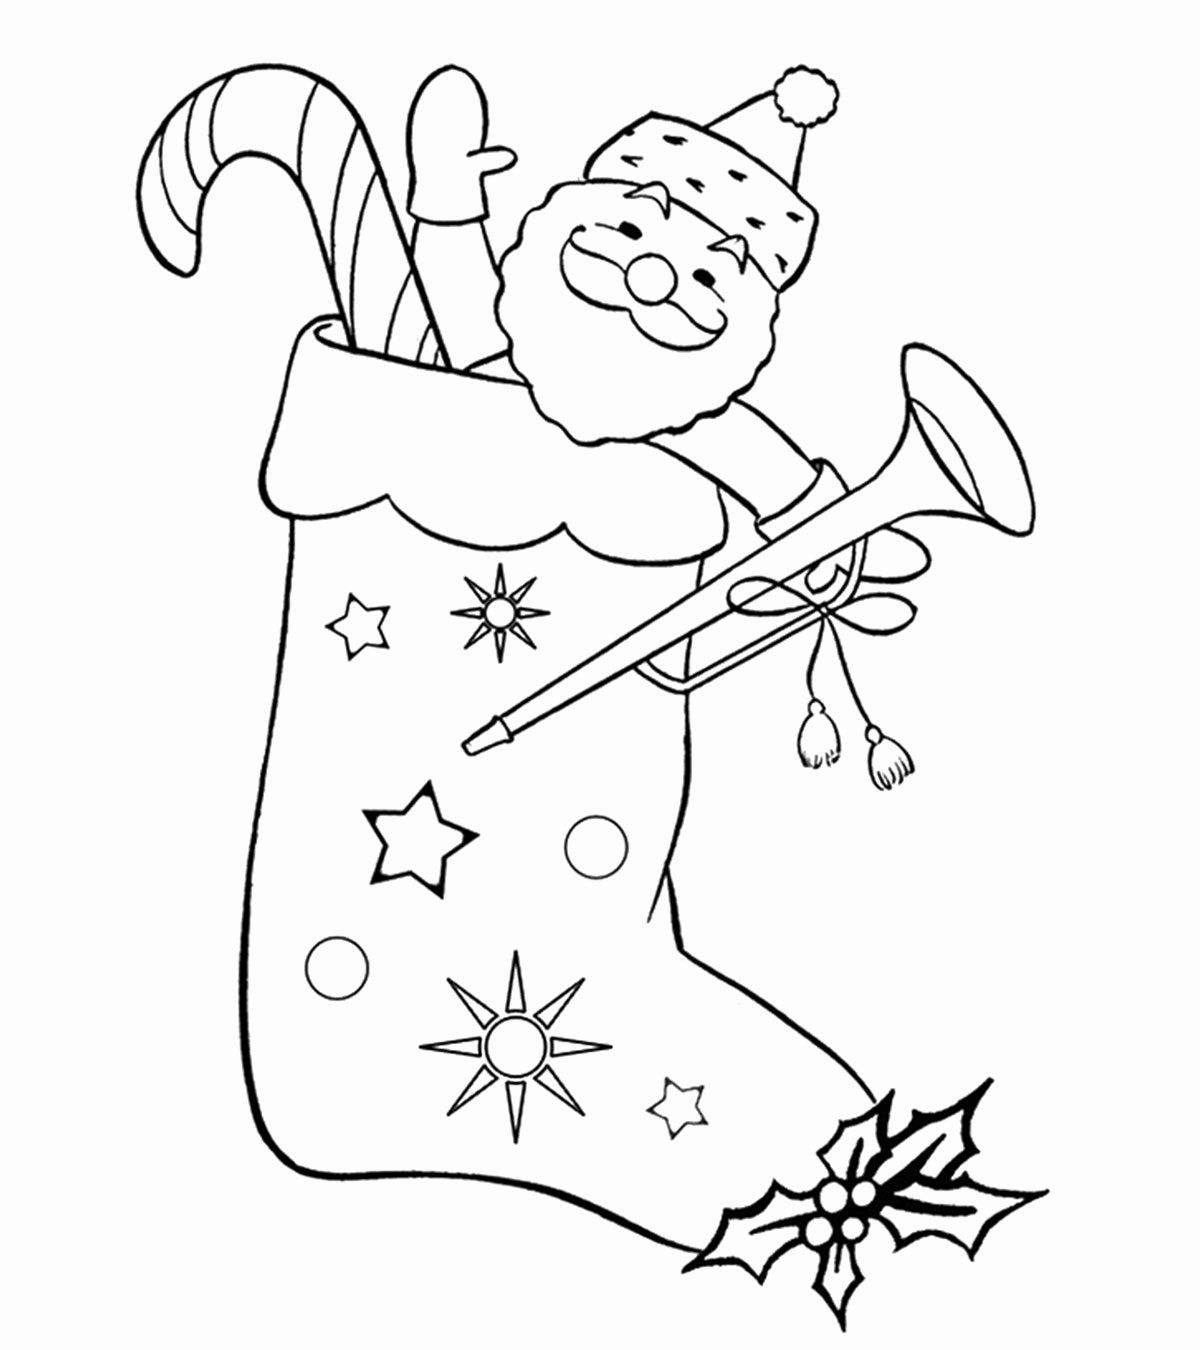 Christmas Coloring Pages Stocking Unique Holiday Coloring Pages Momjunction Rudolph Coloring Pages Printable Christmas Stocking Christmas Coloring Pages